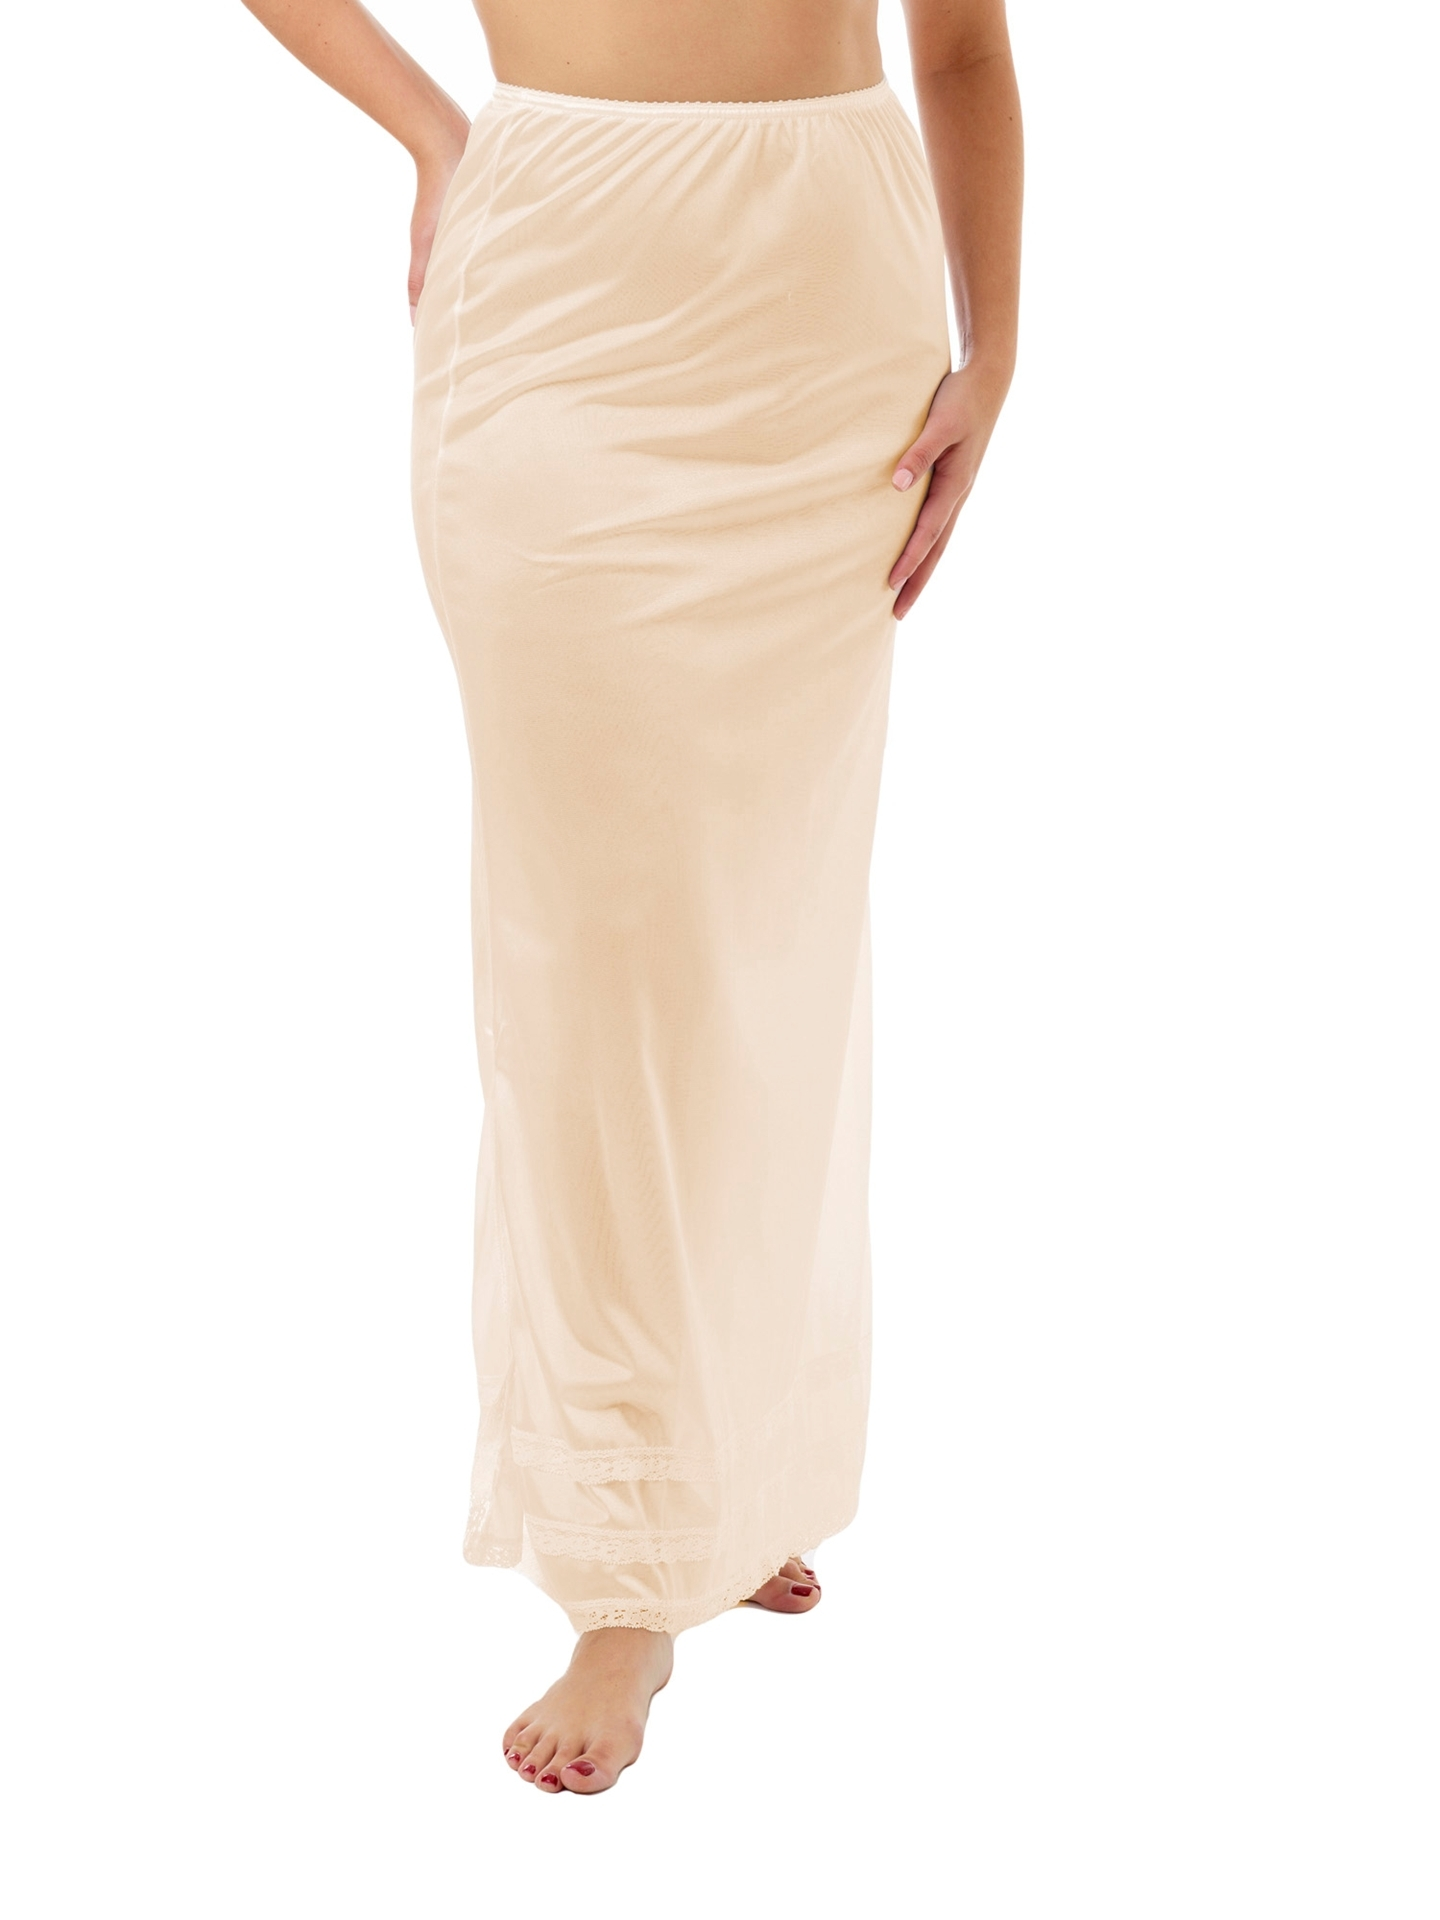 Picture of Nylon Maxi Length Half Slip